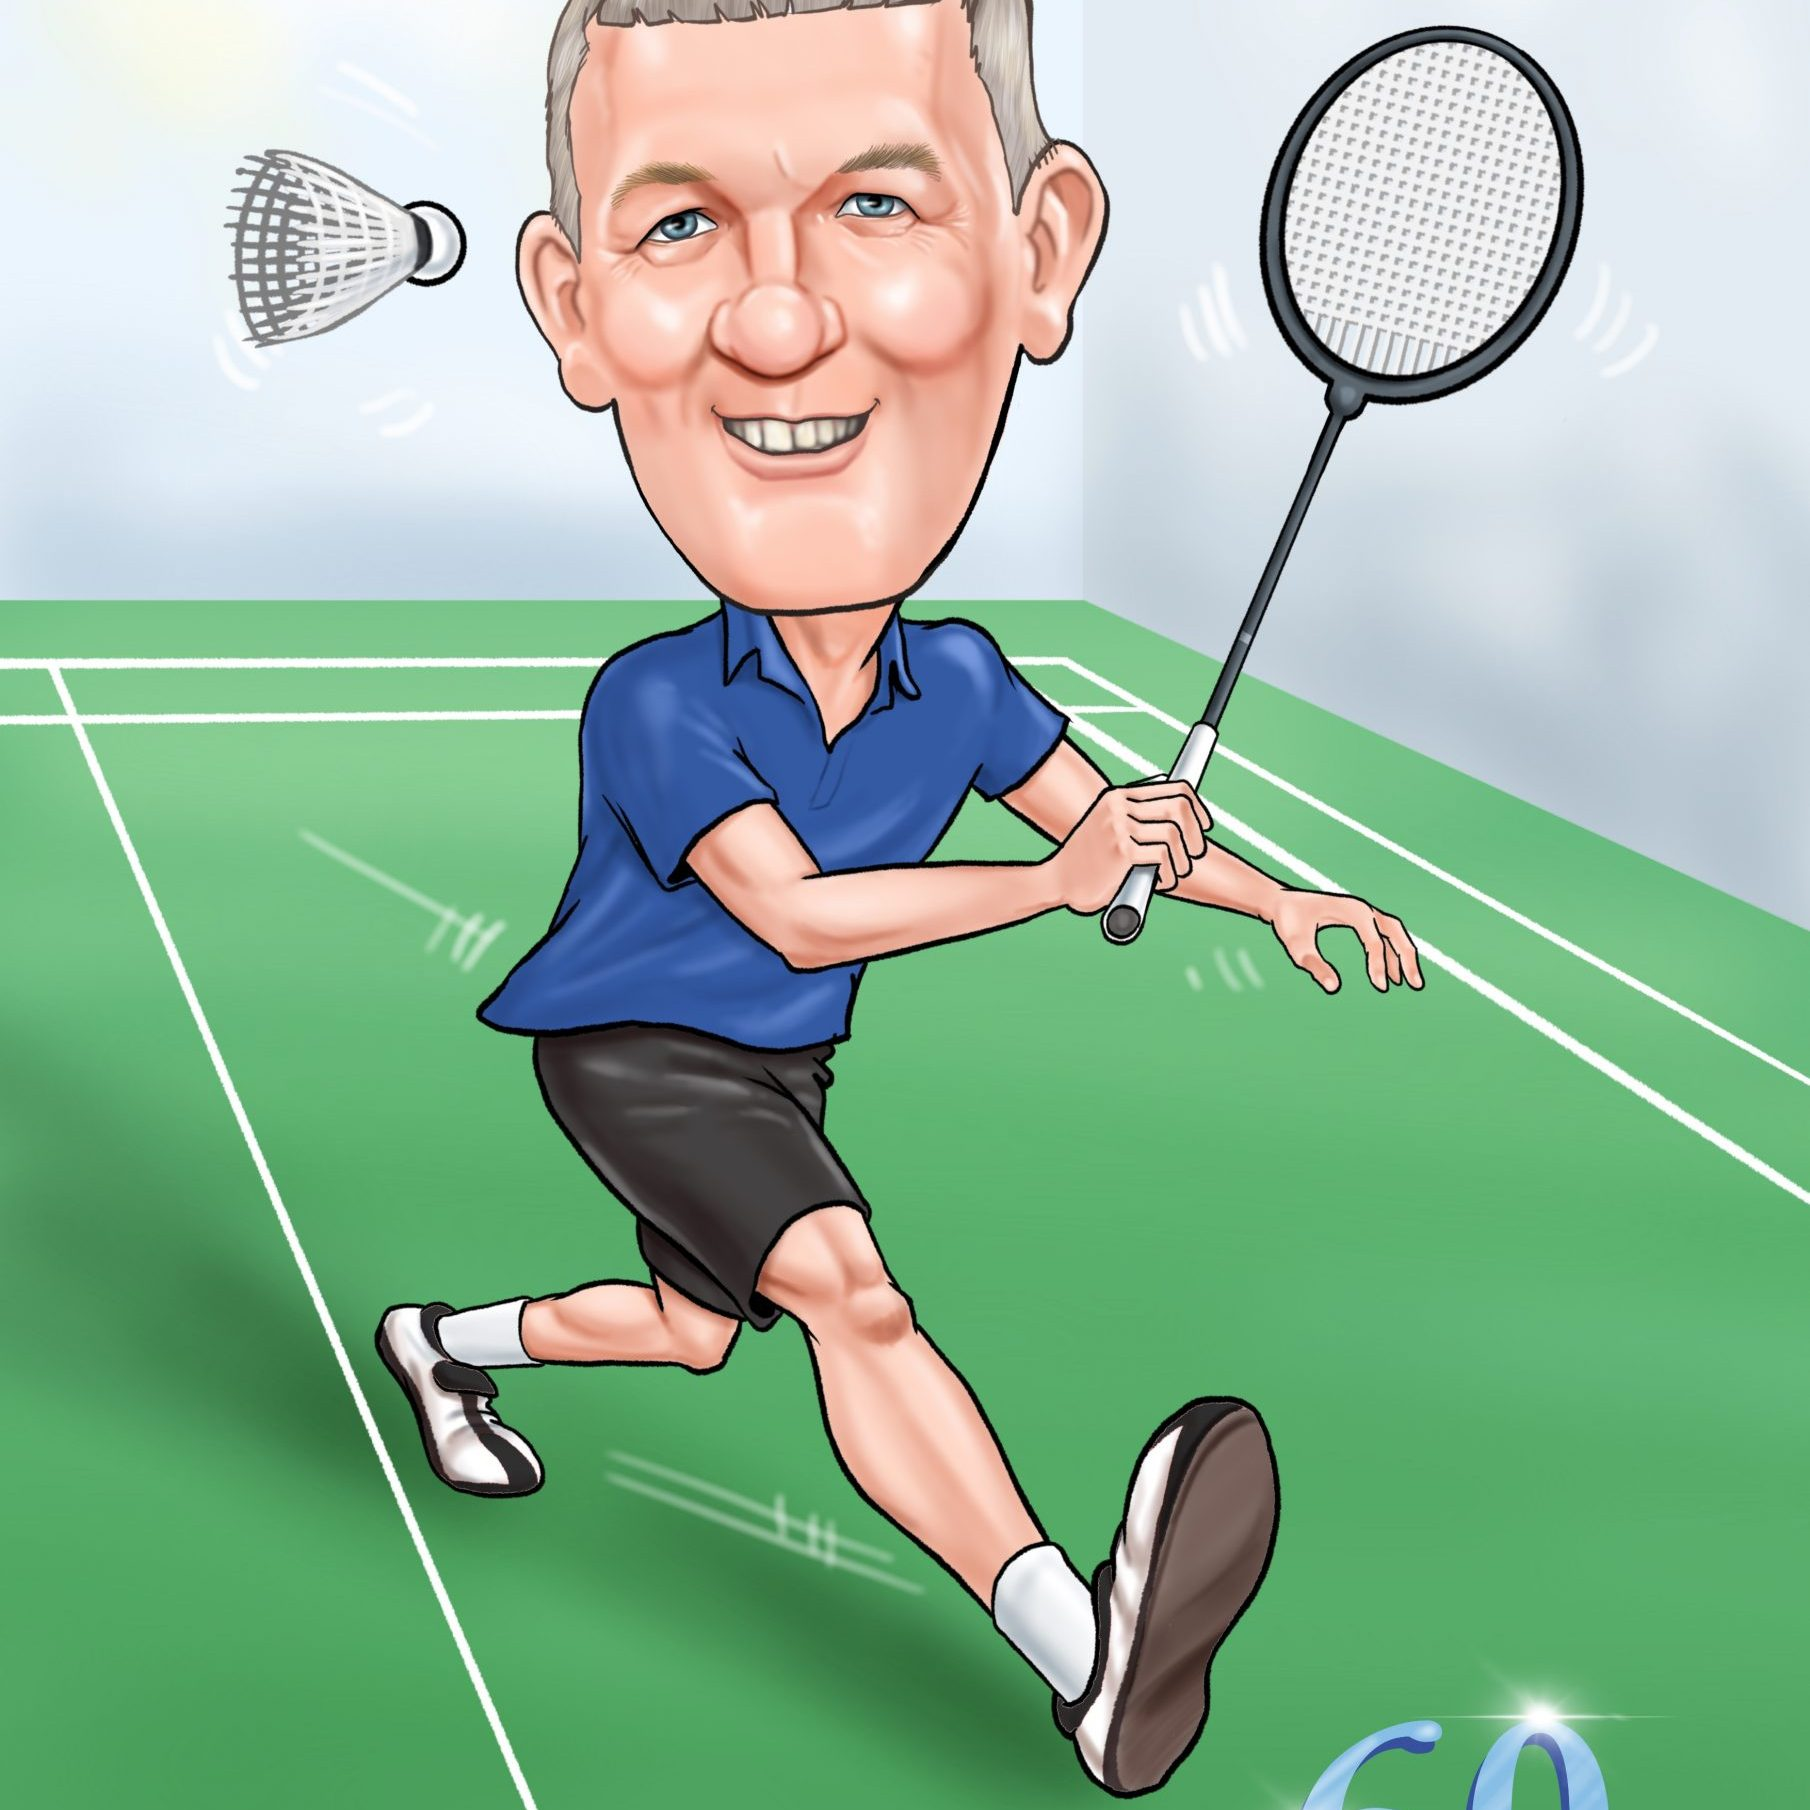 60th caricature for birthday